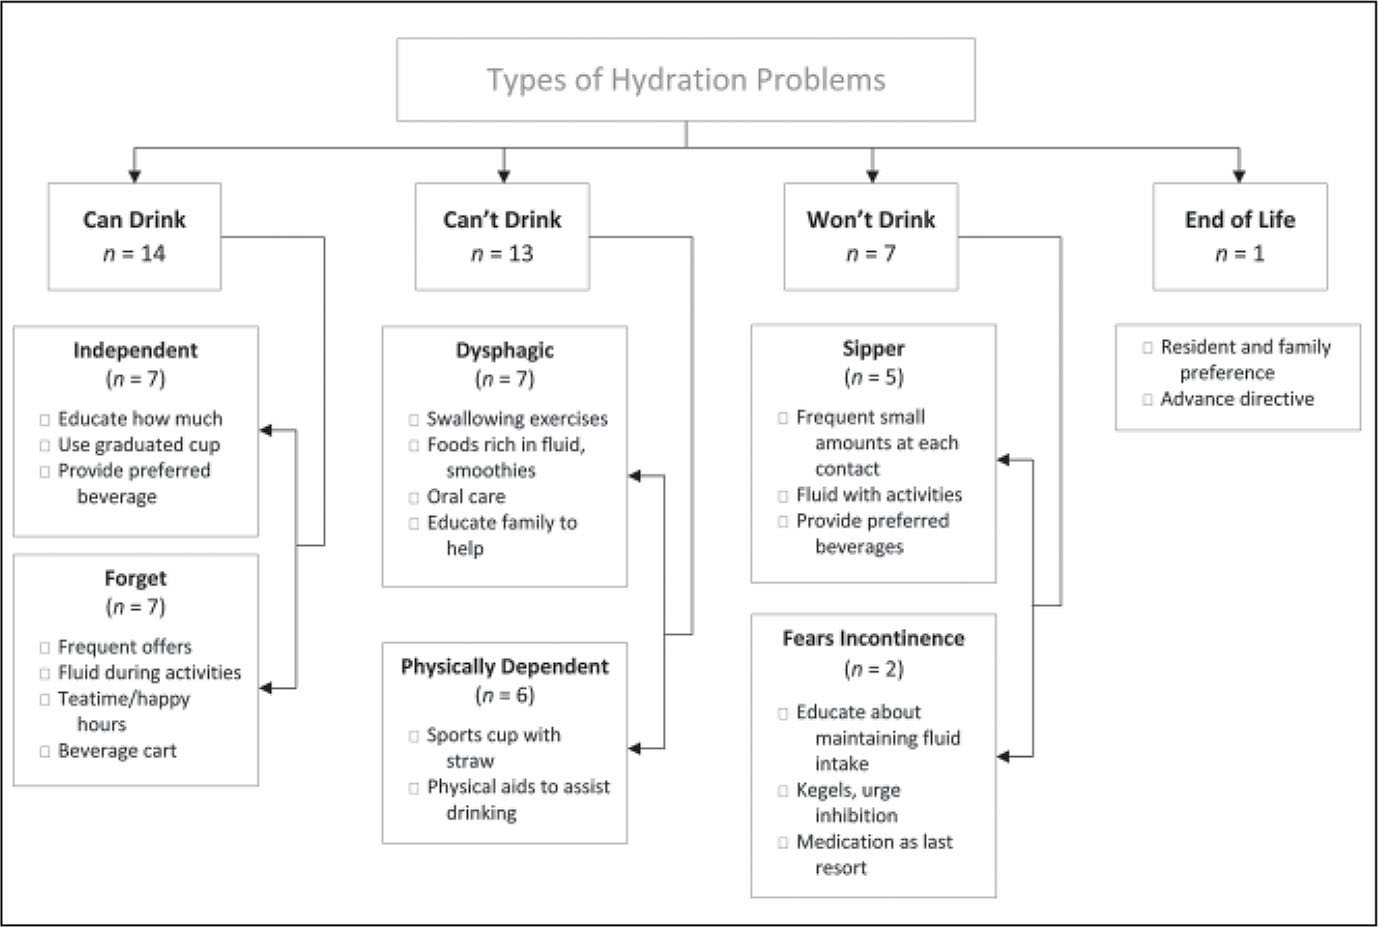 Types of hydration problems and suggested strategies. Reprinted with permission from Mentes (2006).